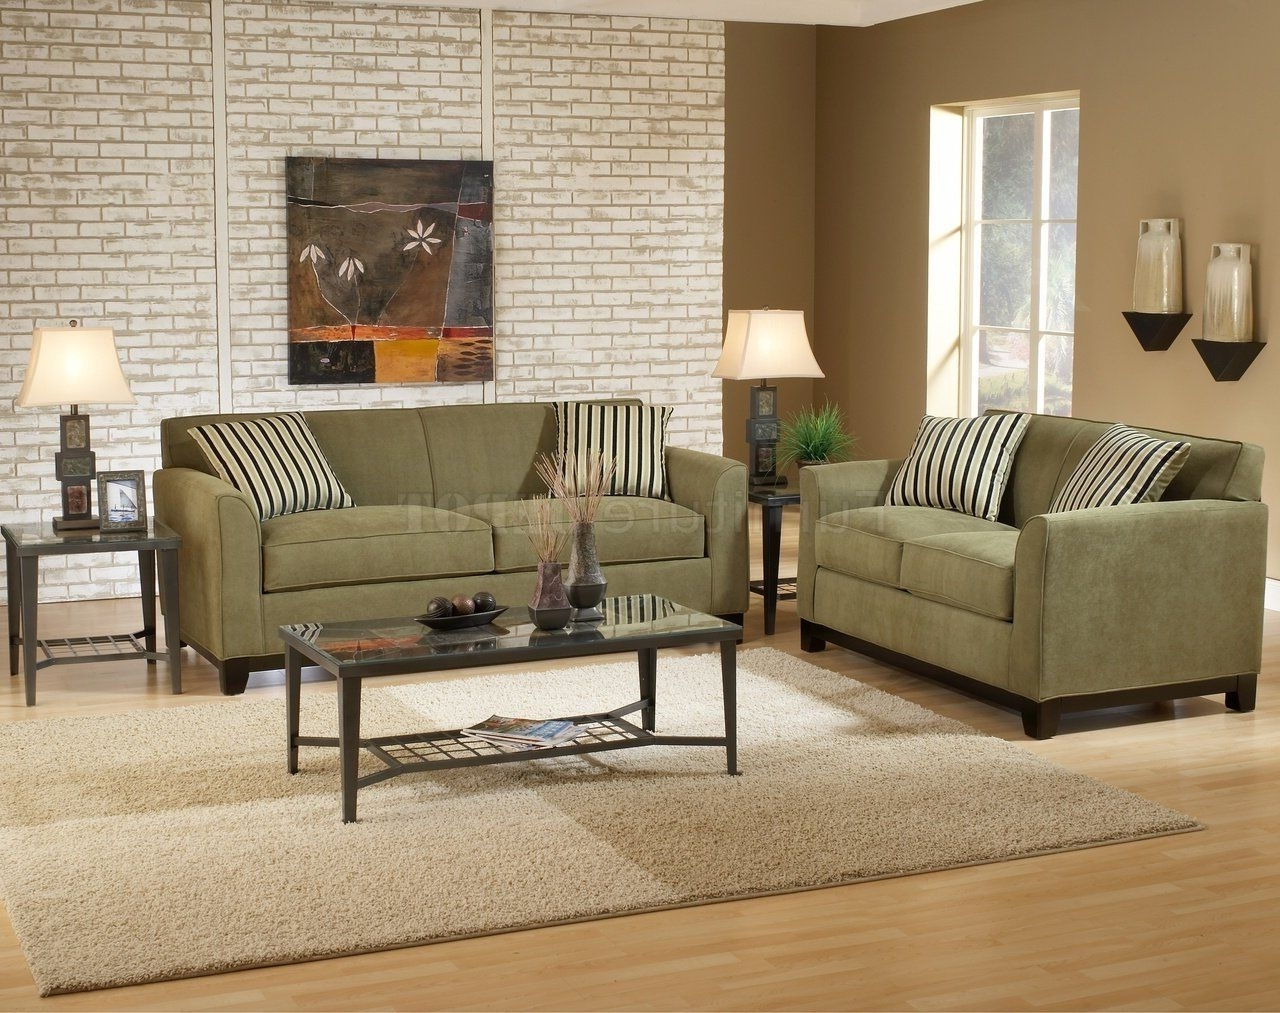 Wall Color For Sage Green Couch (View 8 of 20)